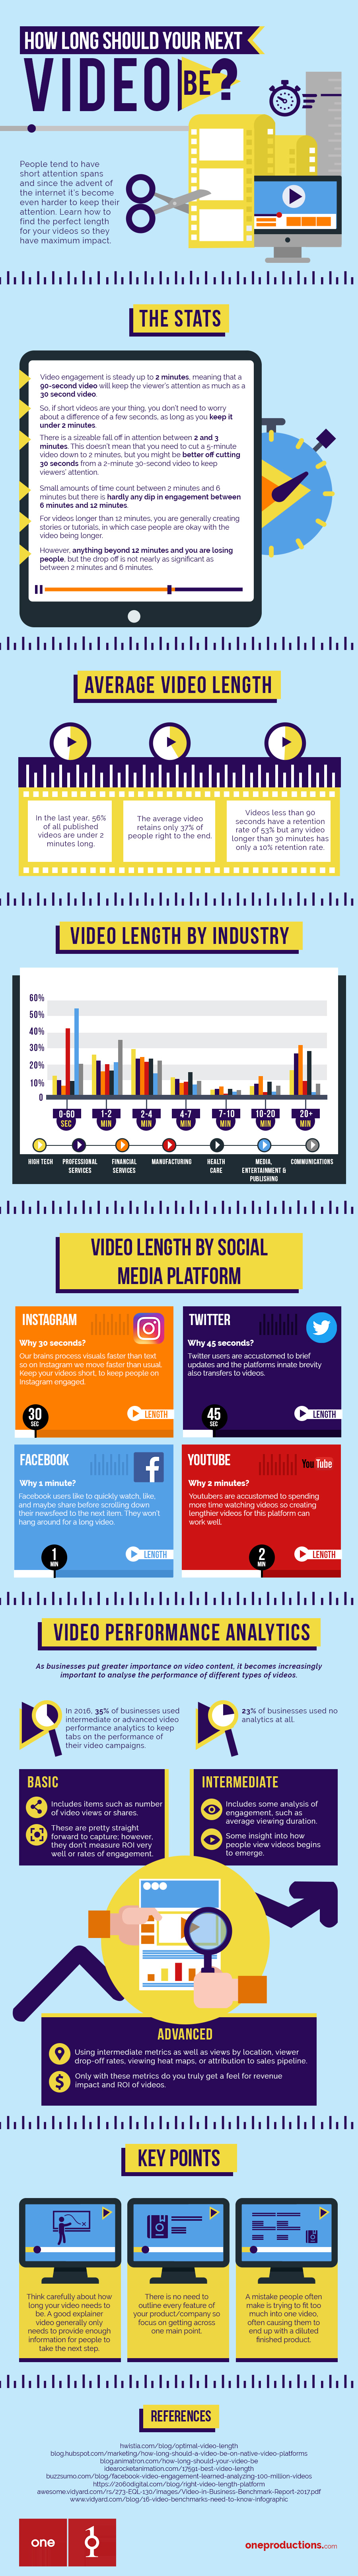 How Long Should Your Next Video Be Infographic